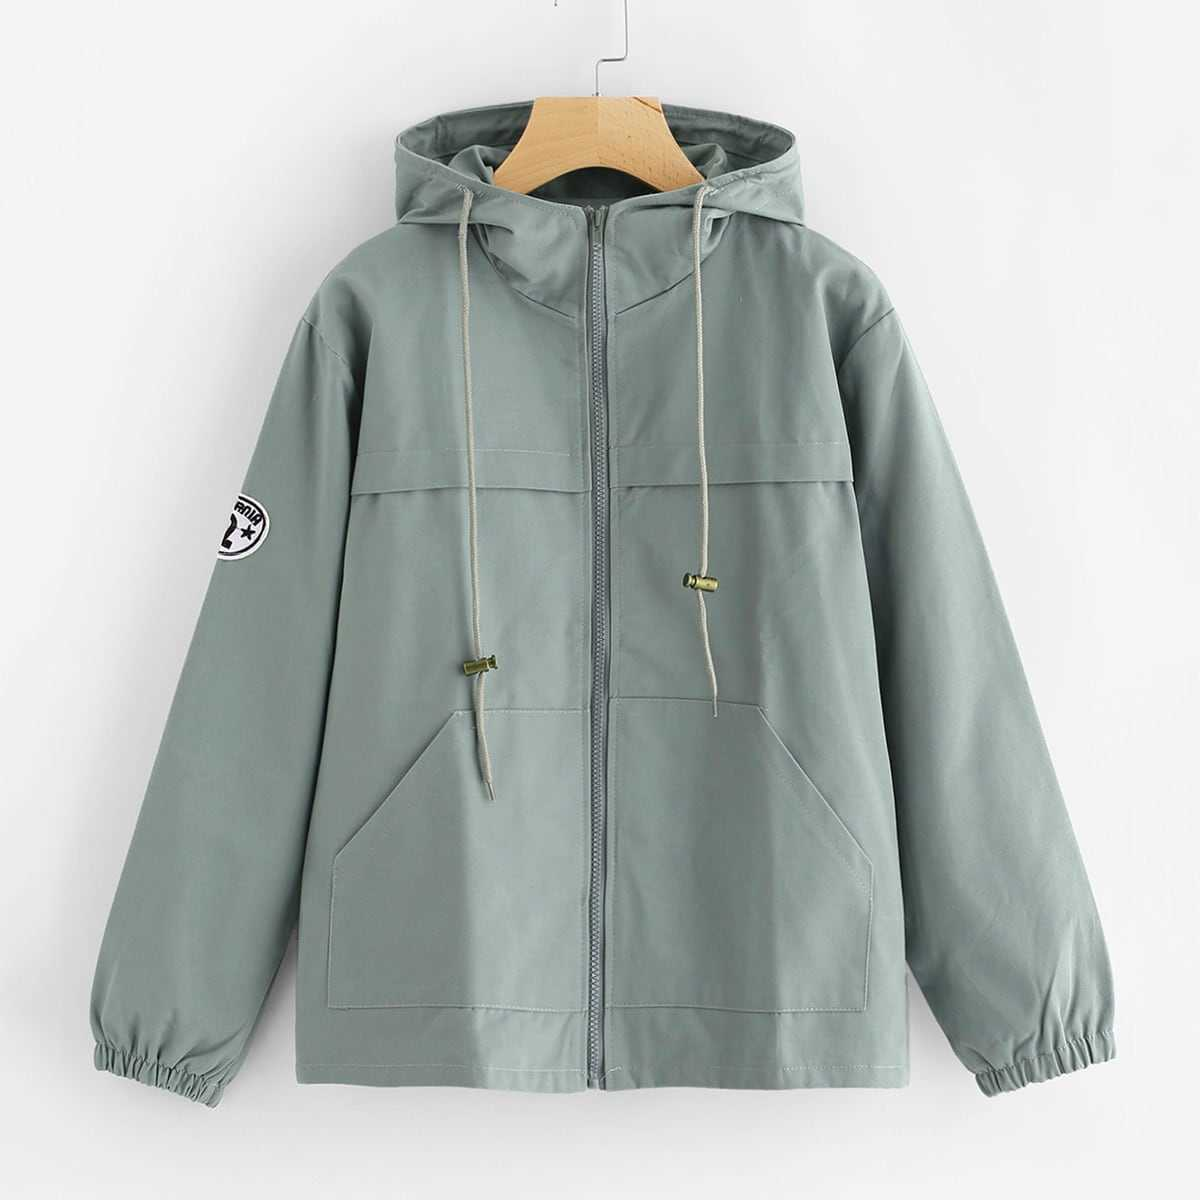 Hooded Drawstring Zip Up Jacket in Blue by ROMWE on GOOFASH